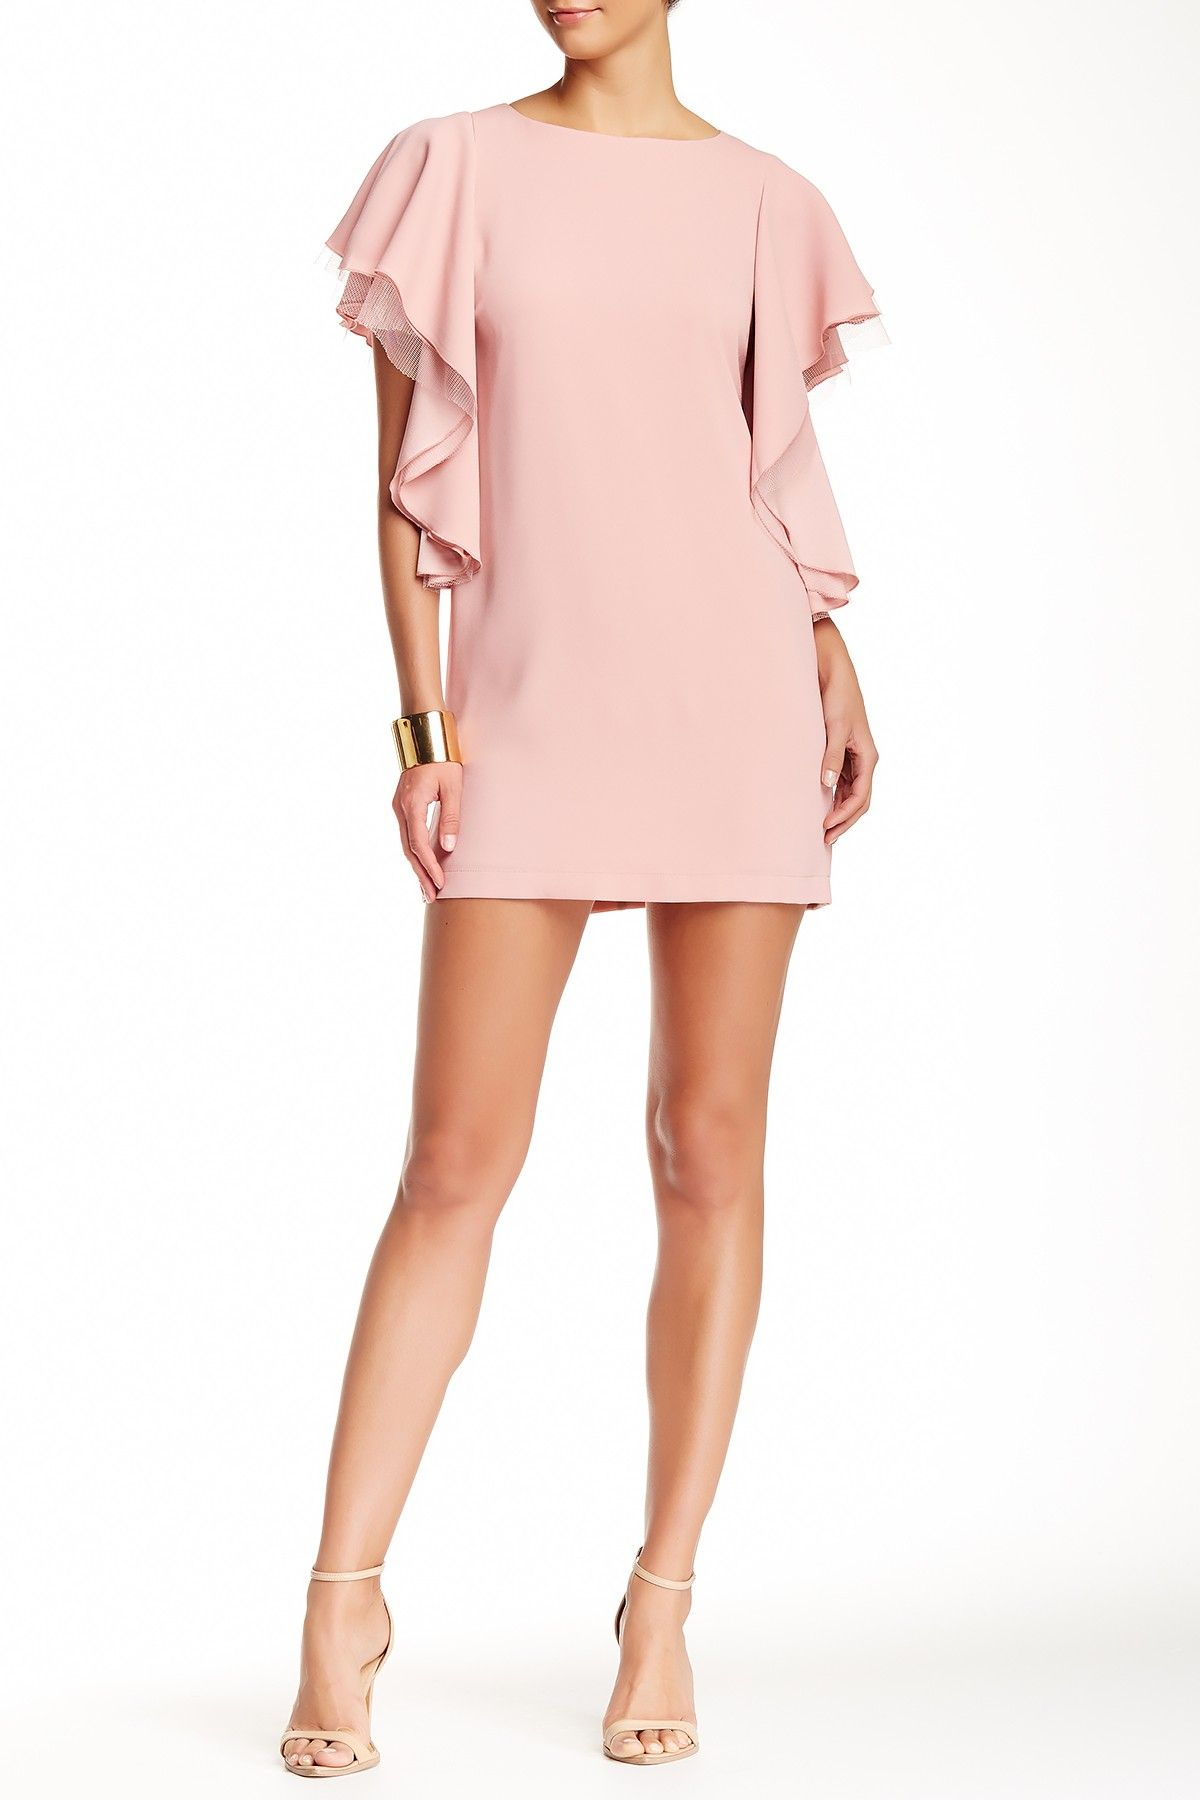 BCBGMAXAZRIA | Solace Evening Dress | Powder pink, Pink dresses and ...